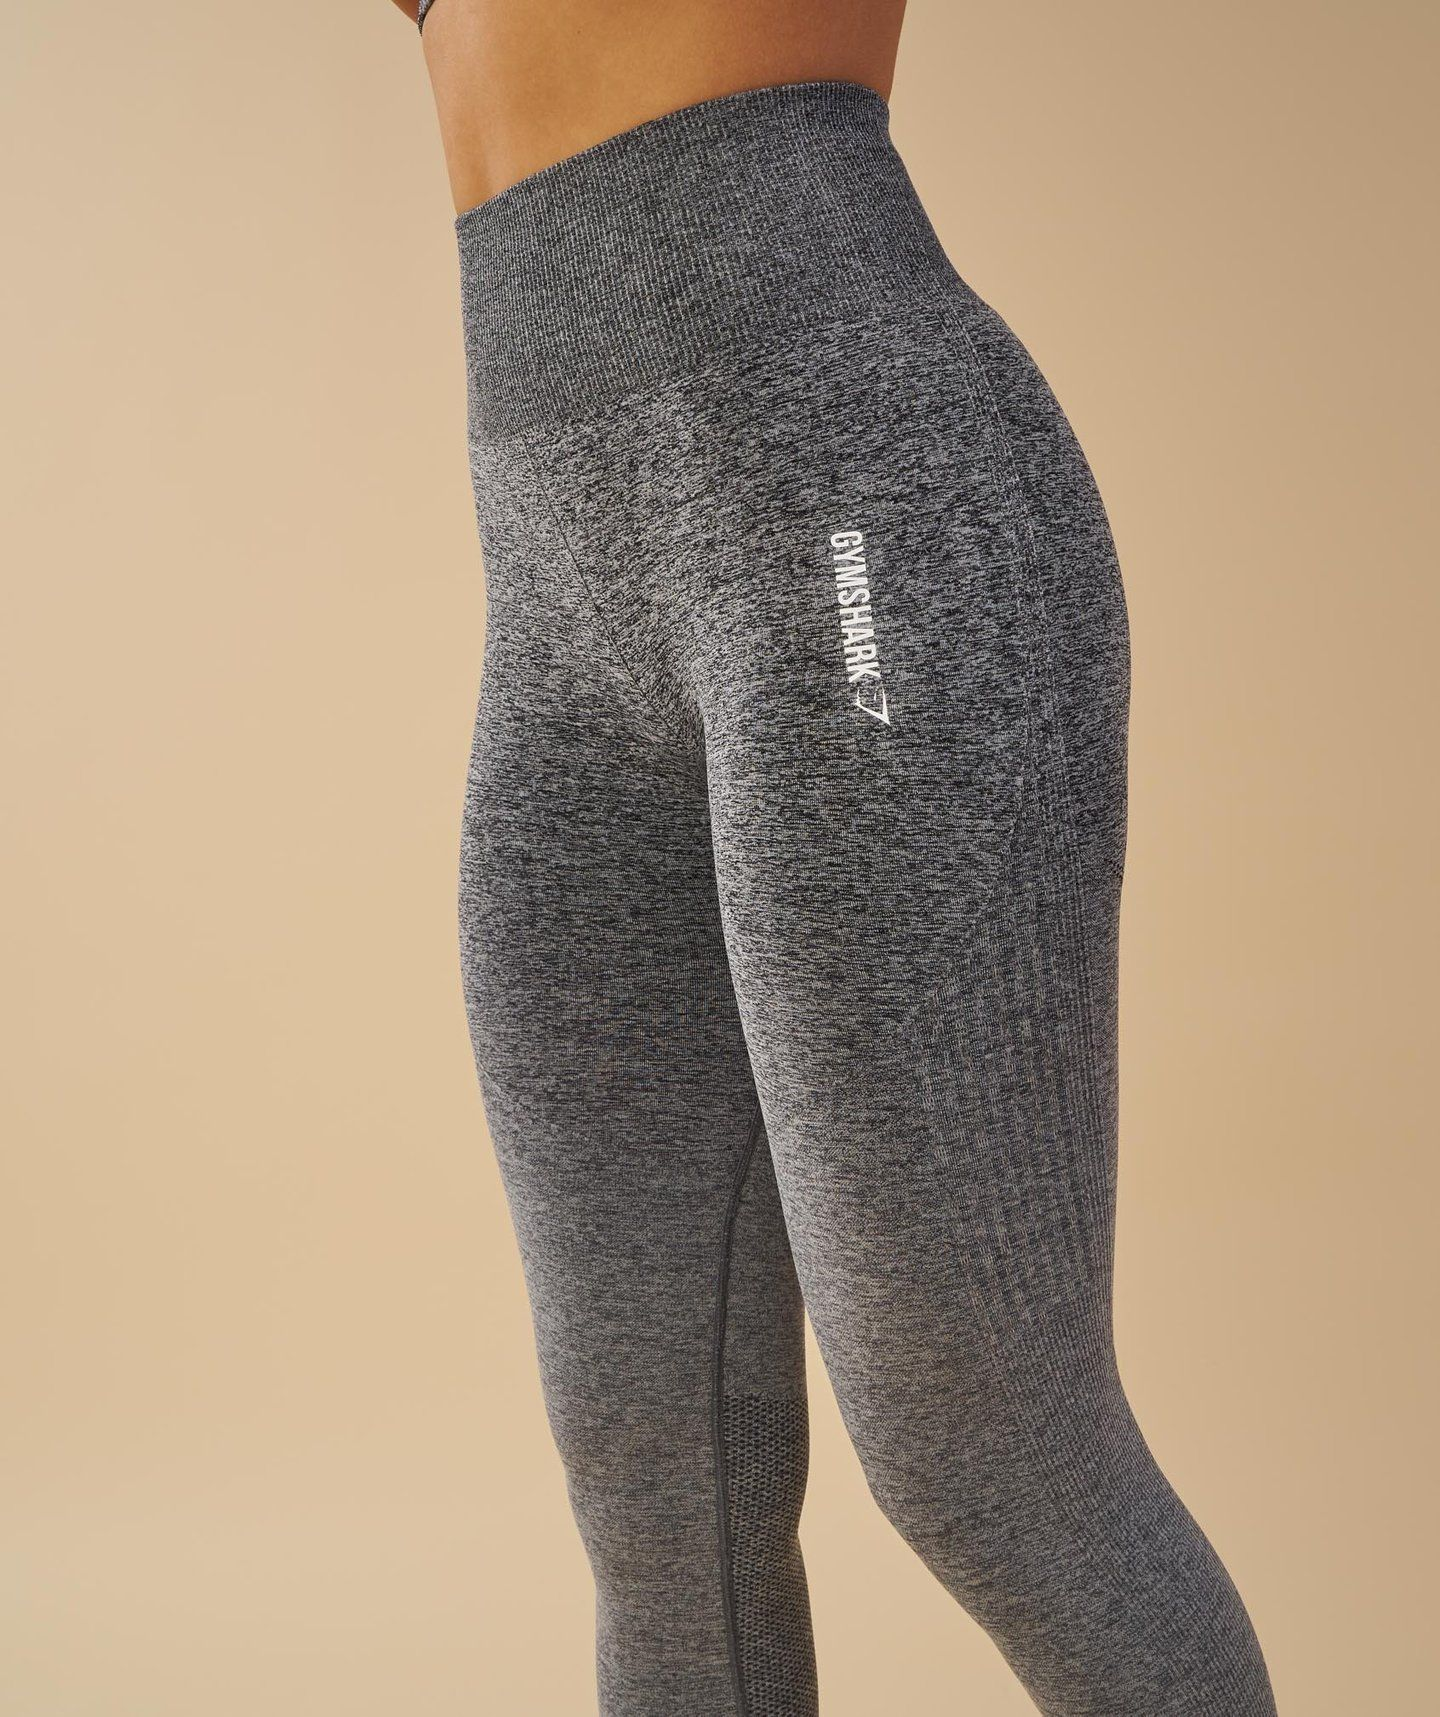 92b811fd79243 kortneyjameson.com Gymshark Ombre Seamless Leggings - Black/Light Grey 1